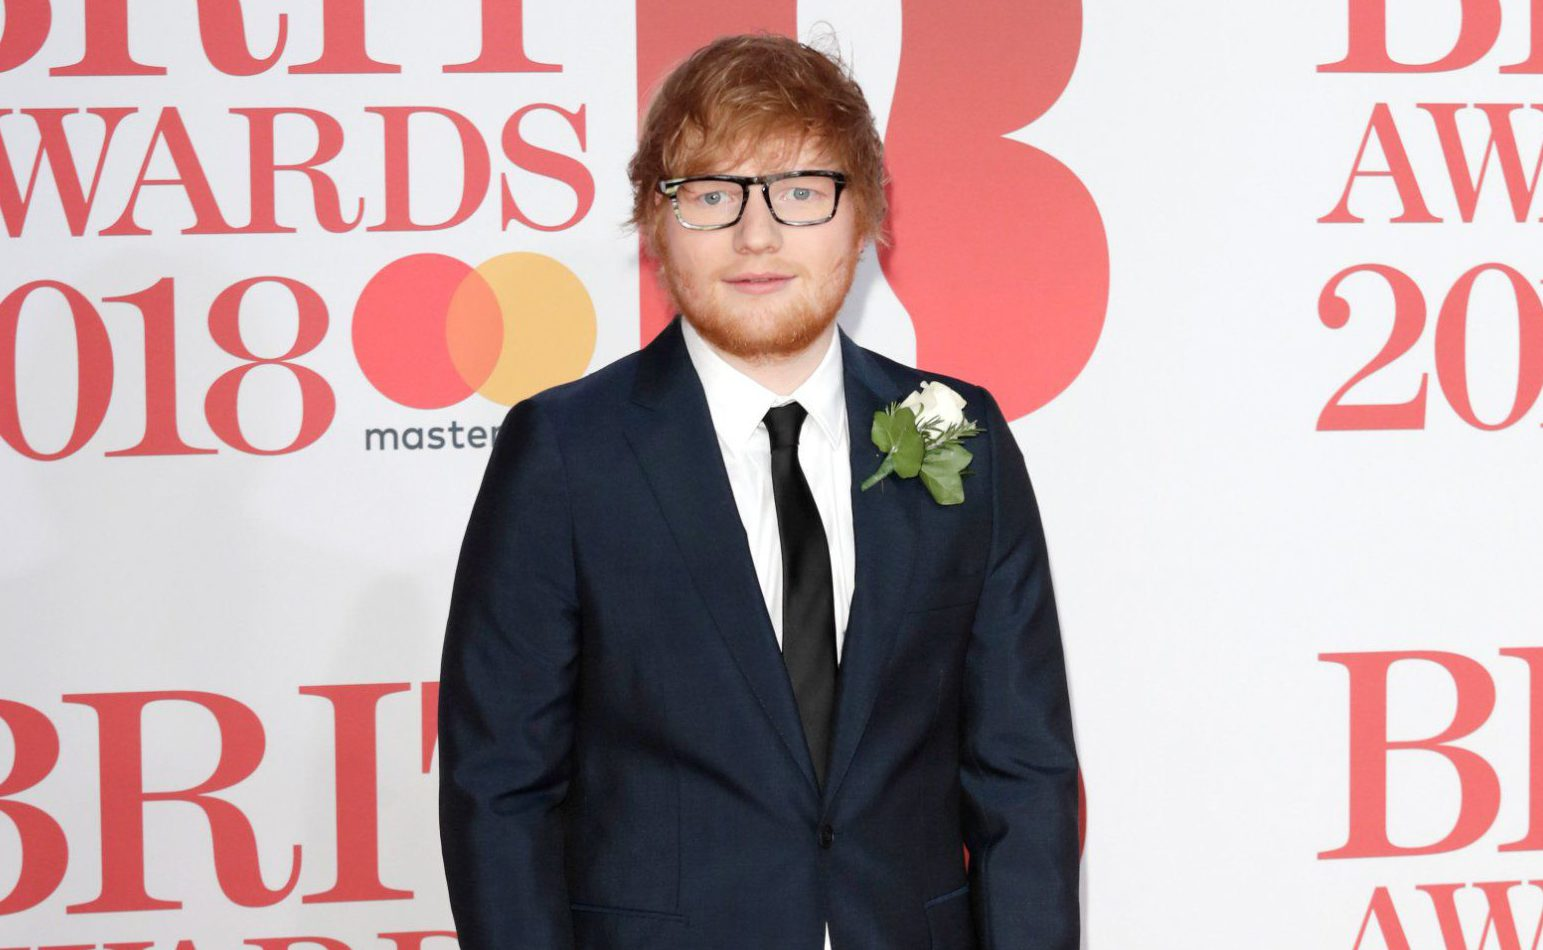 Ed Sheeran blasts 'bollocks' rumour he's building wall around house to 'keep out homeless people'